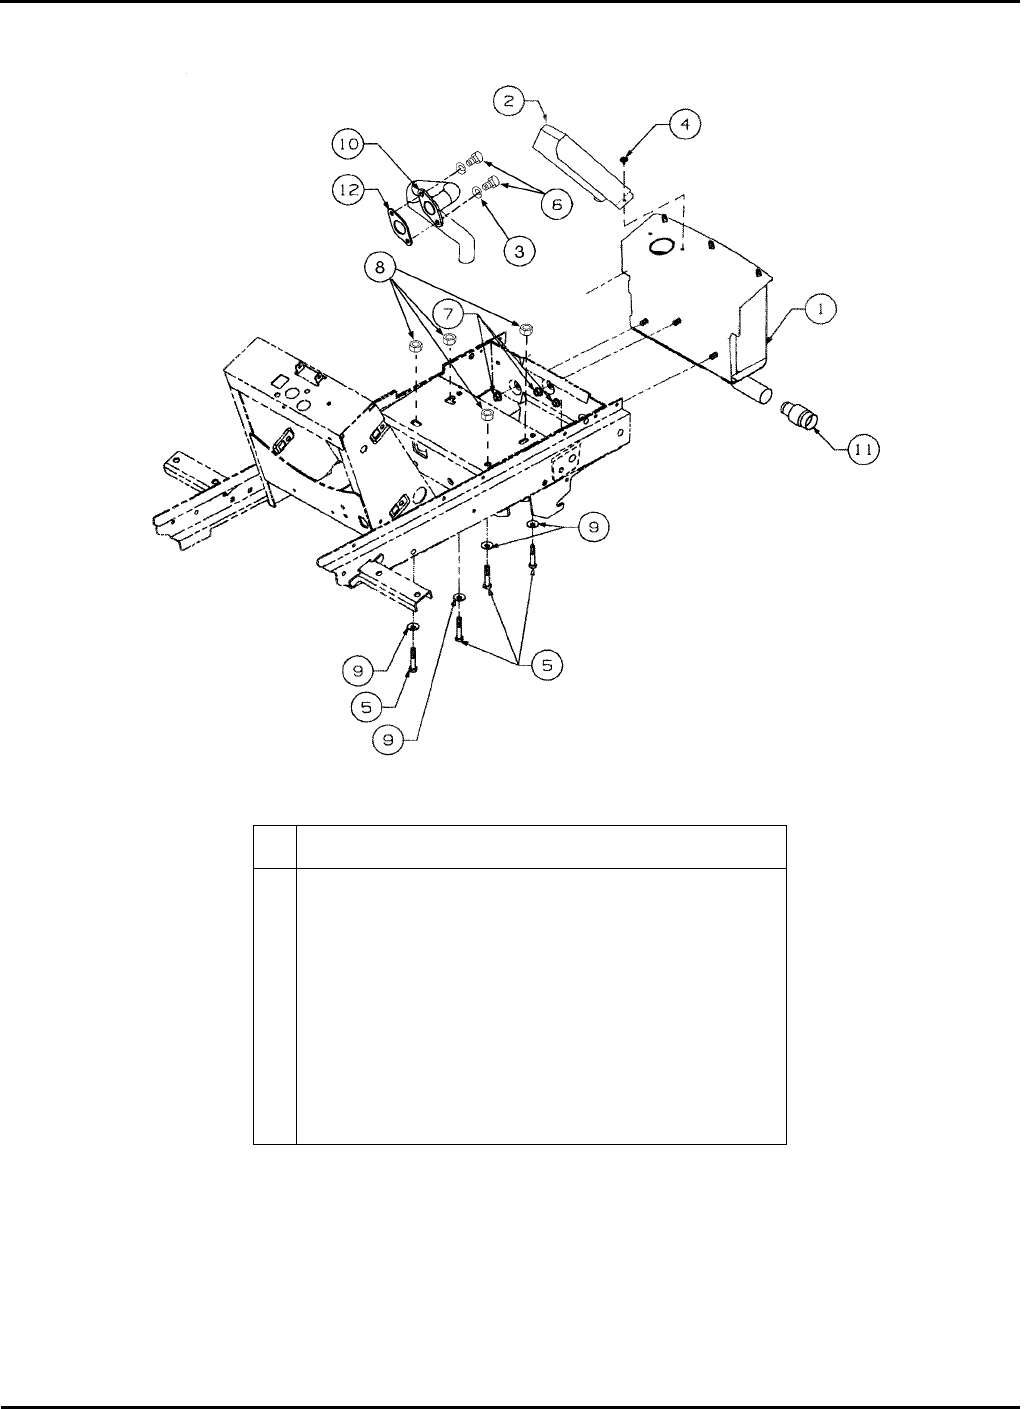 Page 20 of Cub Cadet Lawn Mower 2146 User Guide